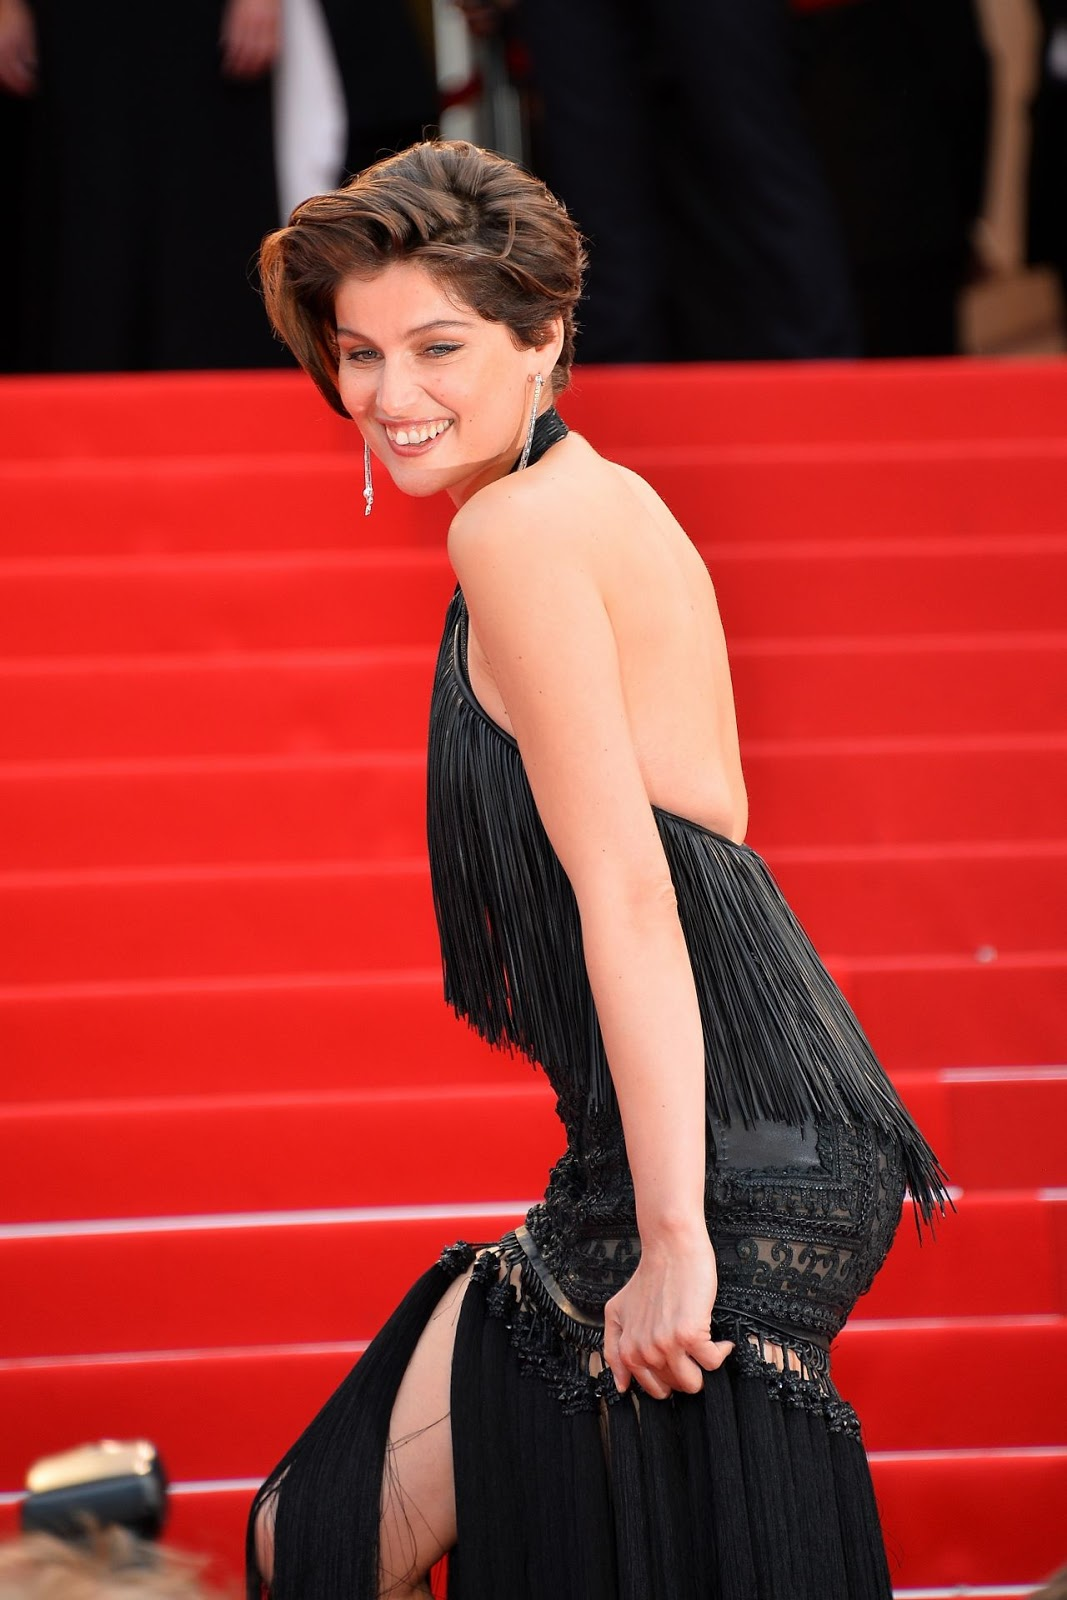 HQ Photo sof Laetitia Casta Closing Ceremony At 2015 Cannes Film Festival